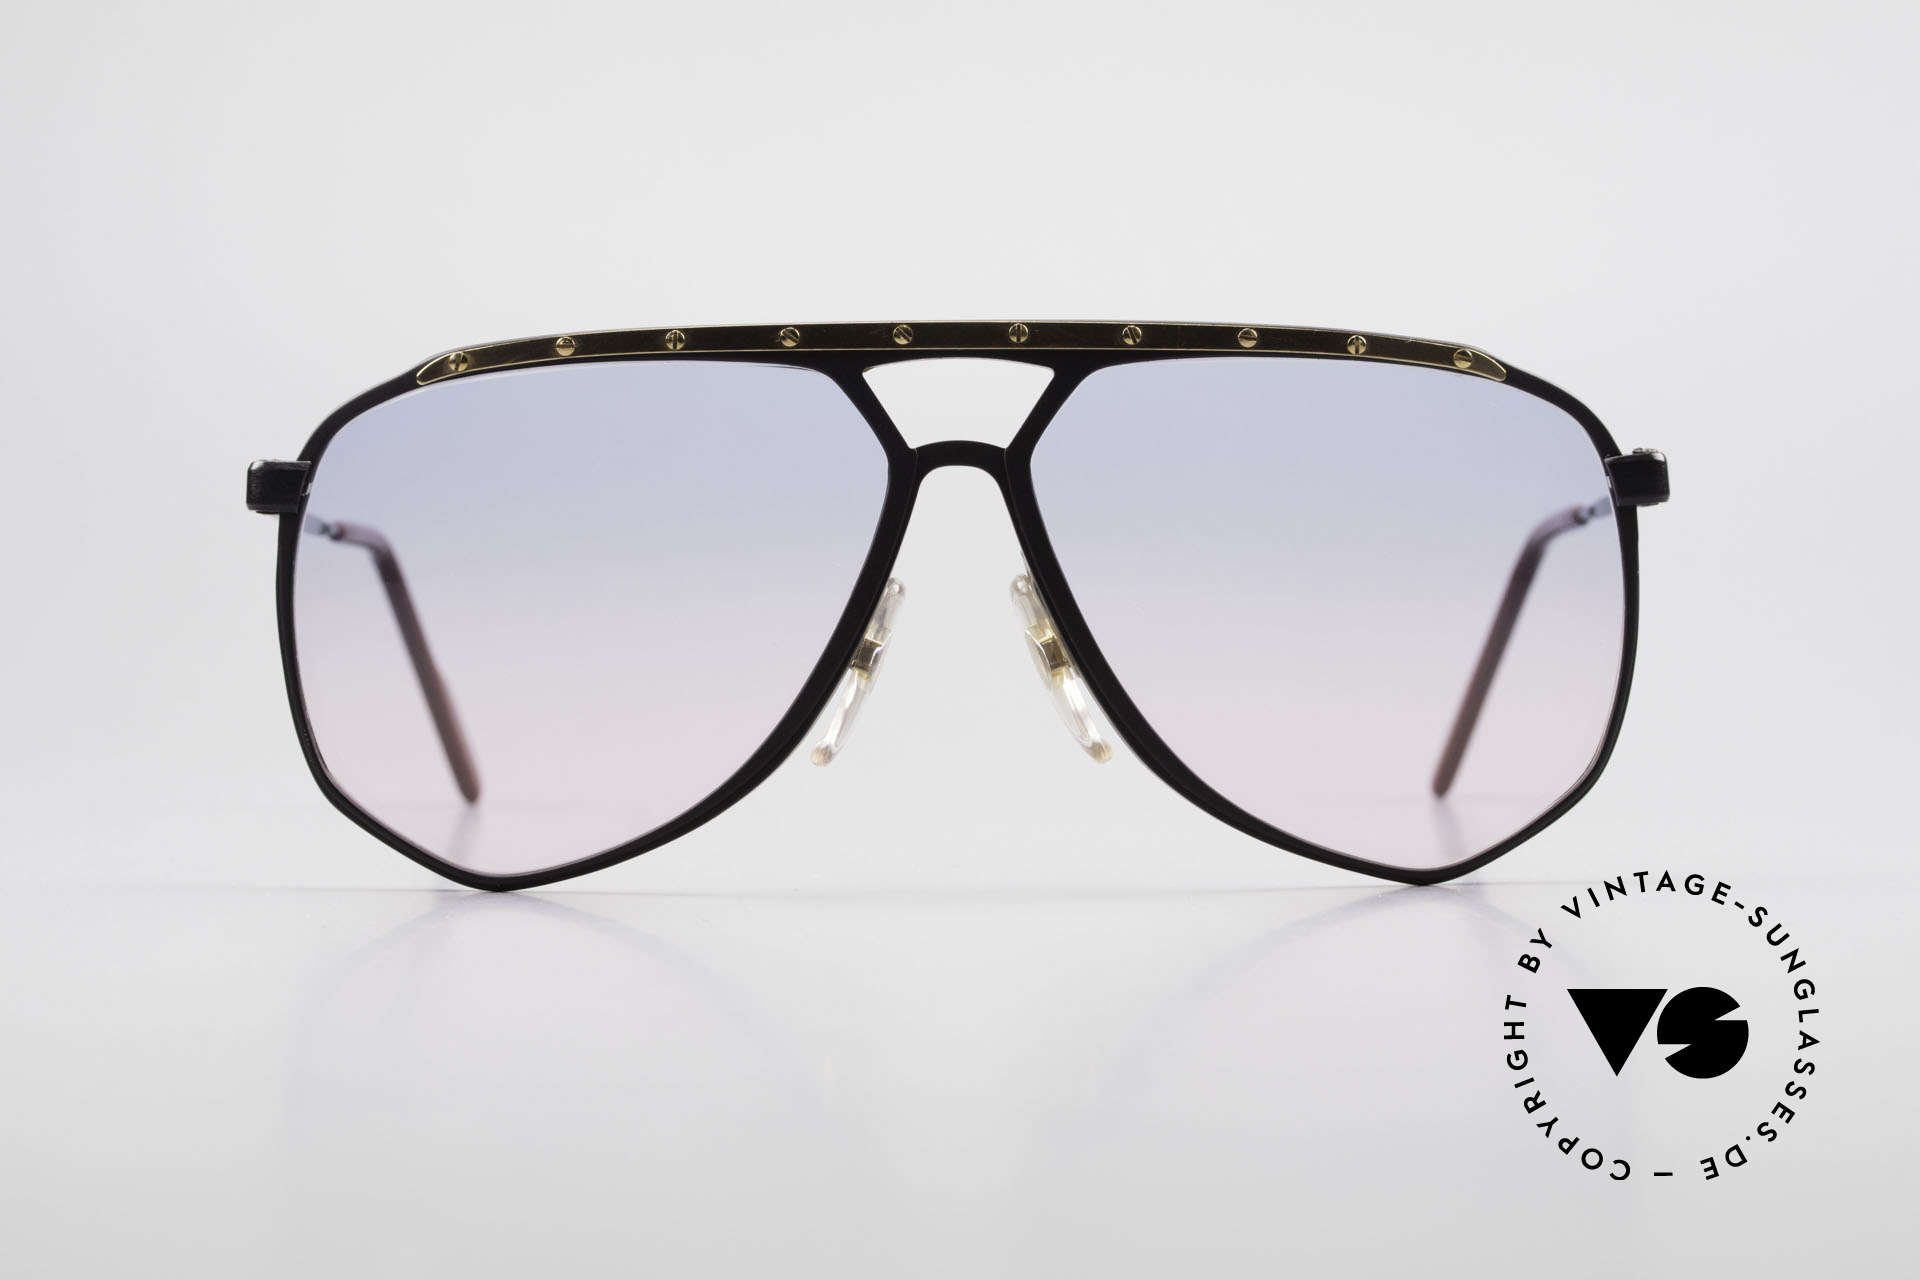 Alpina M1/4 80's Sunglasses Baby-Blue Pink, also handmade; but produced a bit later (1989/1990), Made for Men